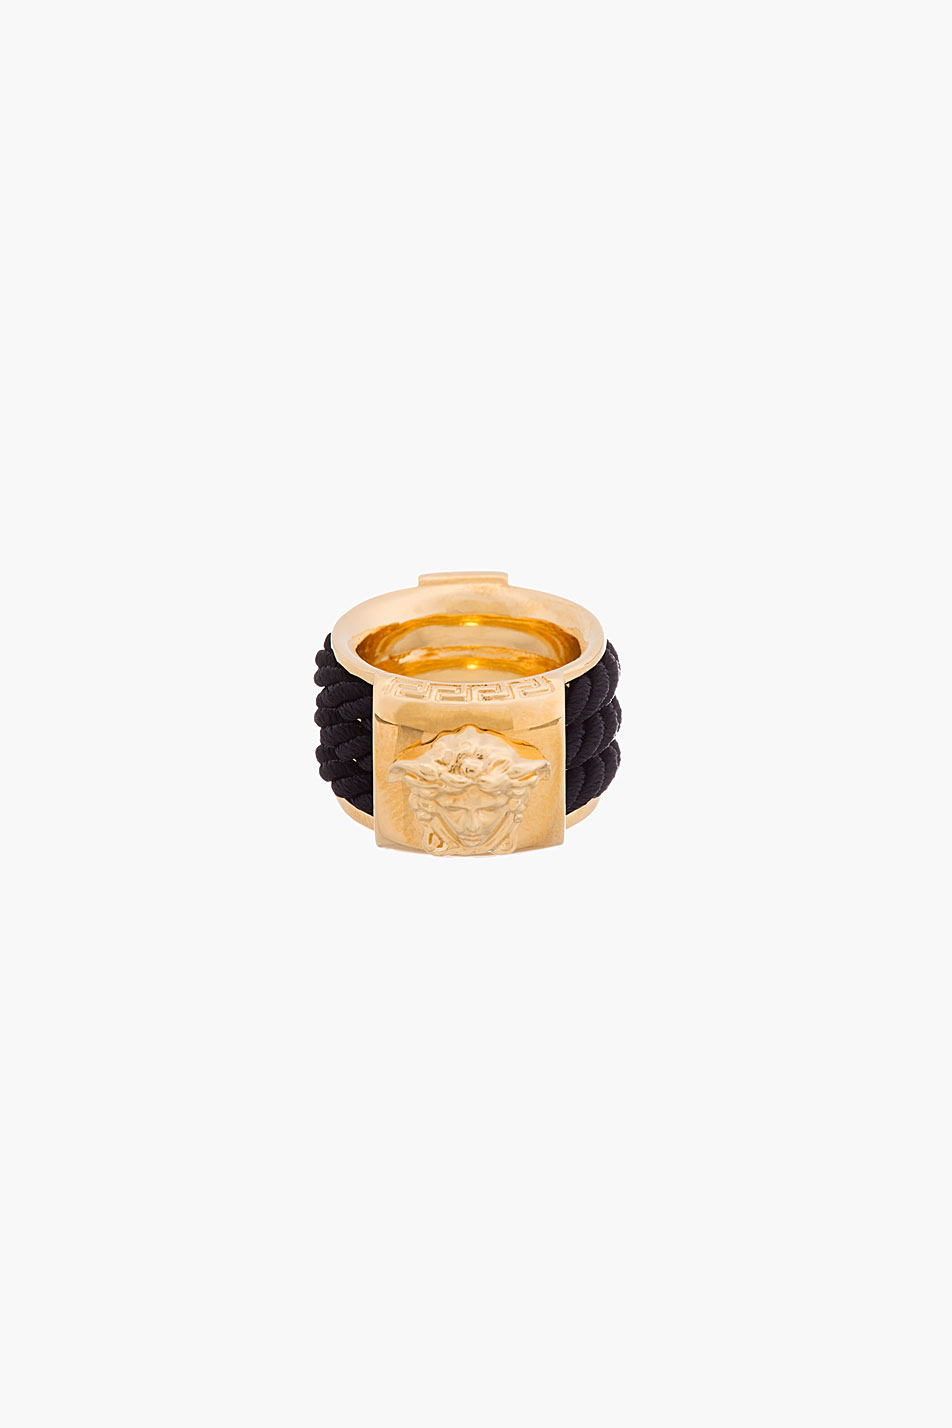 Versace gold and black rope emblem ring